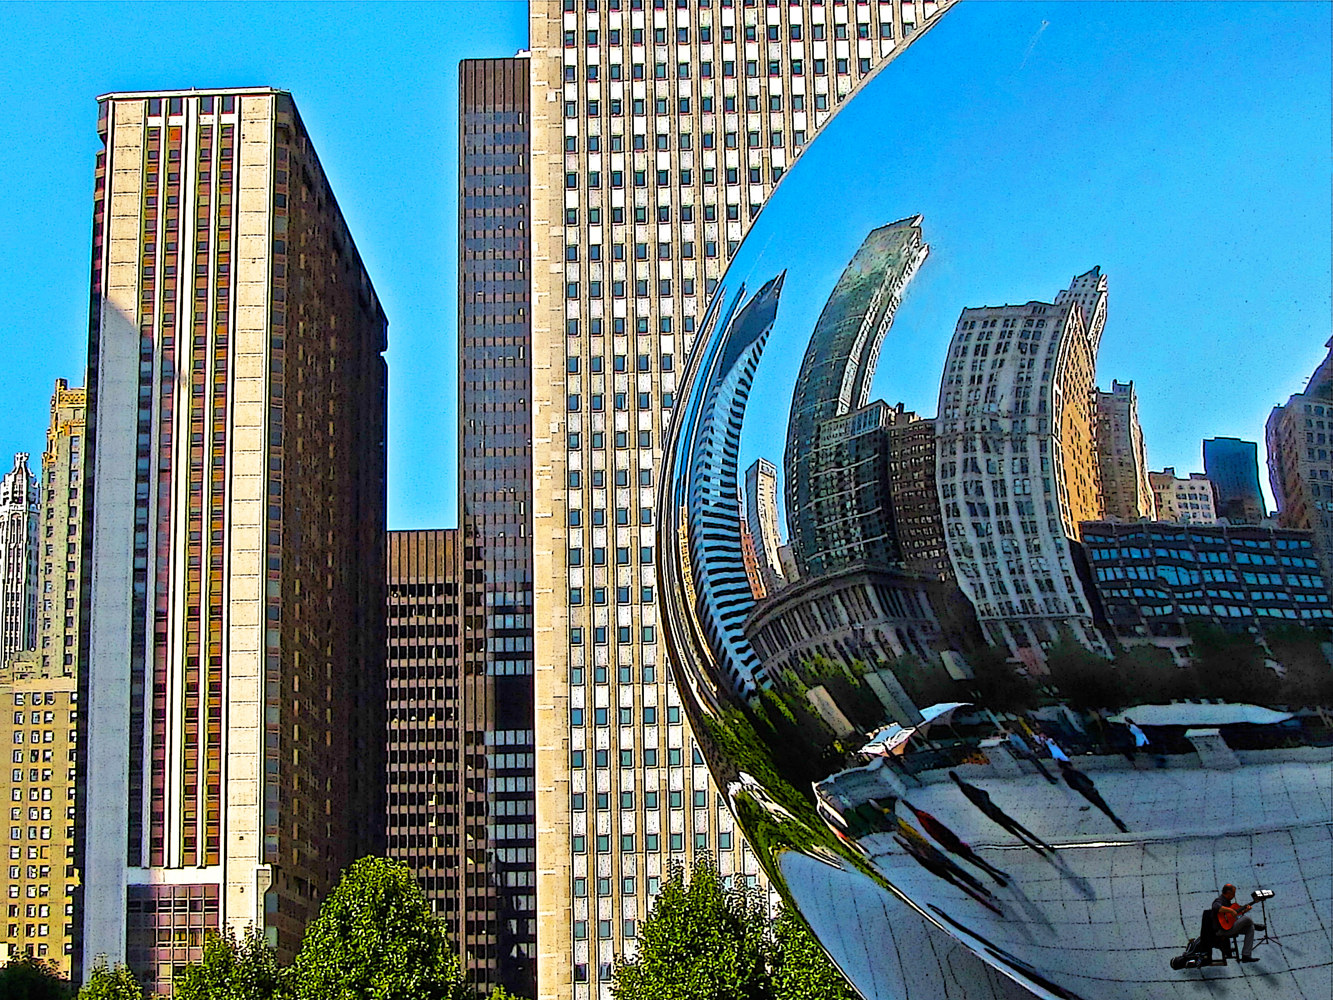 CHICAGO BEAN REFLECTION by Joeann Edmonds-Matthew